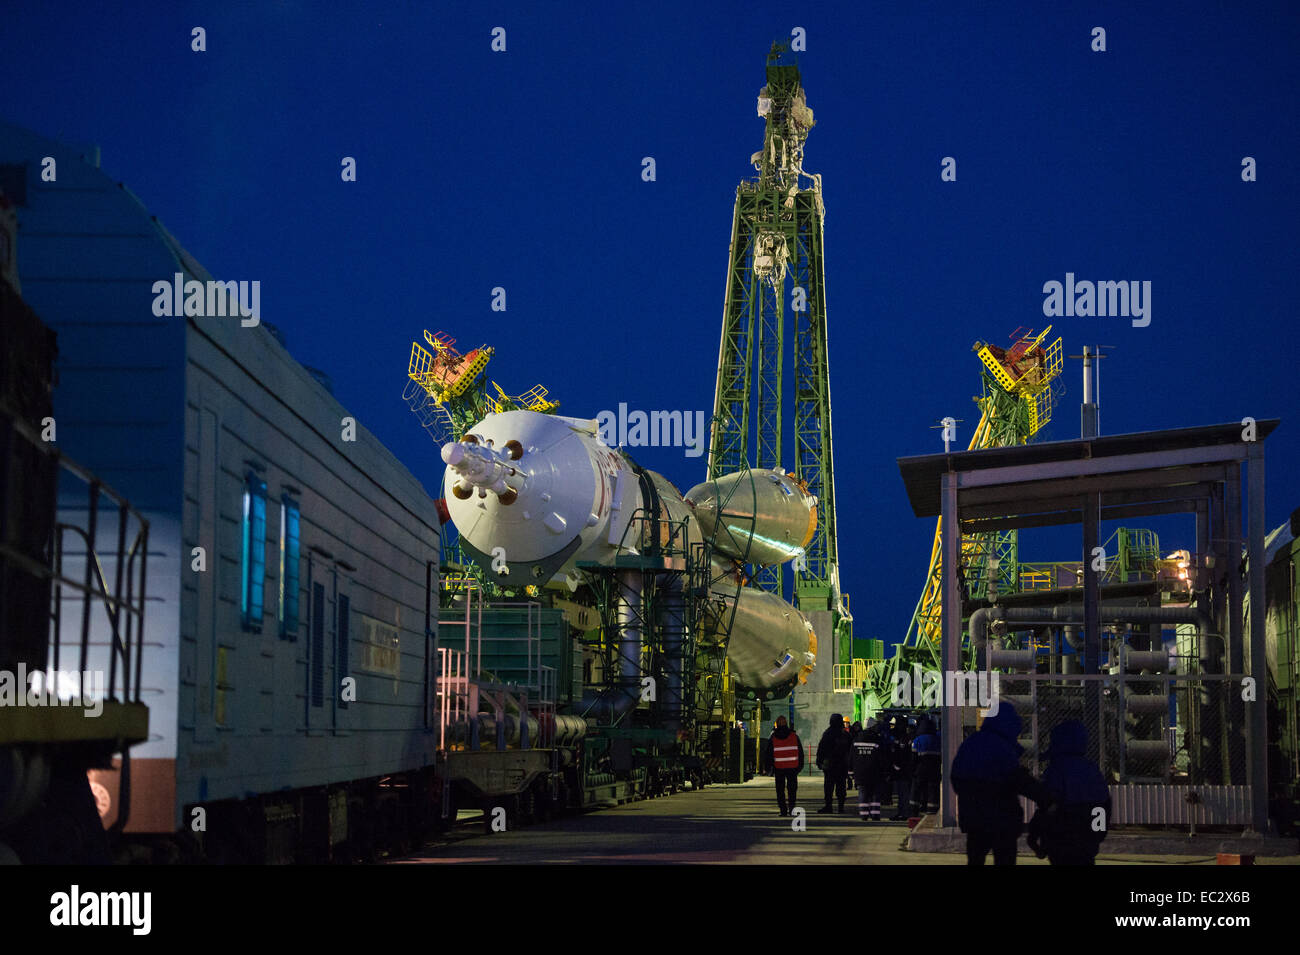 The Soyuz TMA-15M spacecraft is seen shortly after arriving at the launch pad by train on Friday, Nov. 21, 2014, - Stock Image